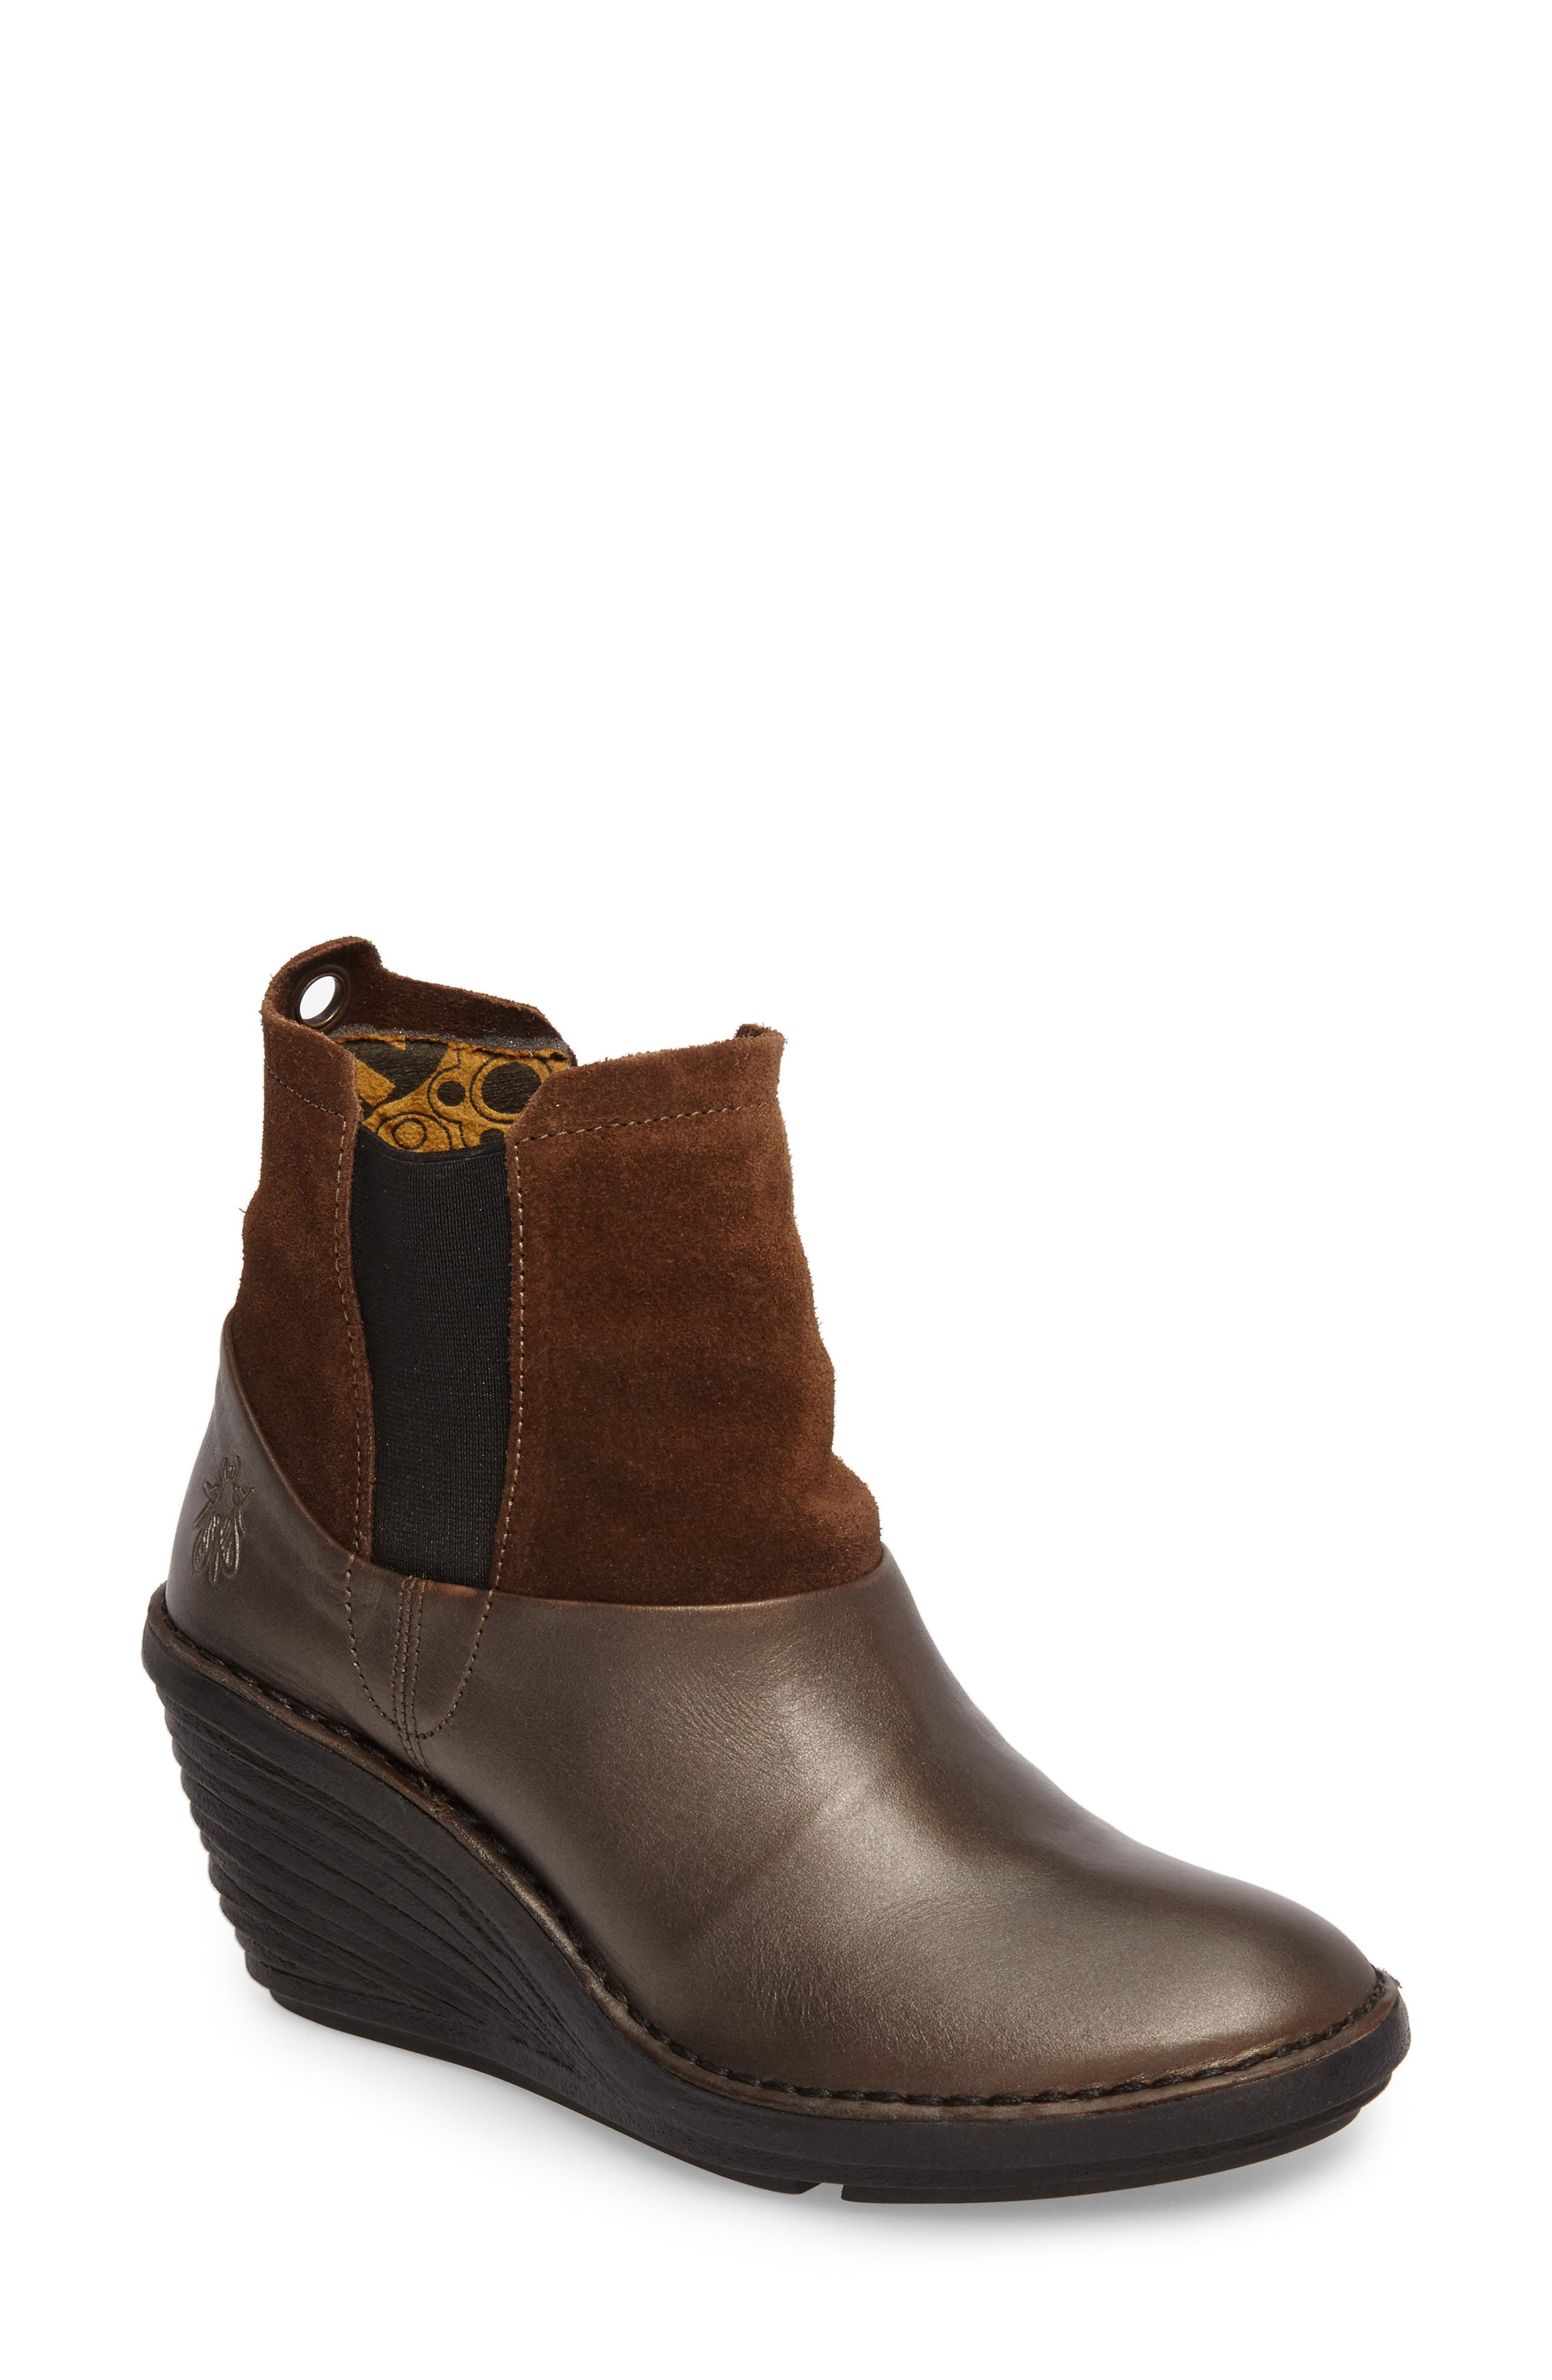 Sula Wedge Bootie,                             Main thumbnail 1, color,                             Olive/ Camel Suede